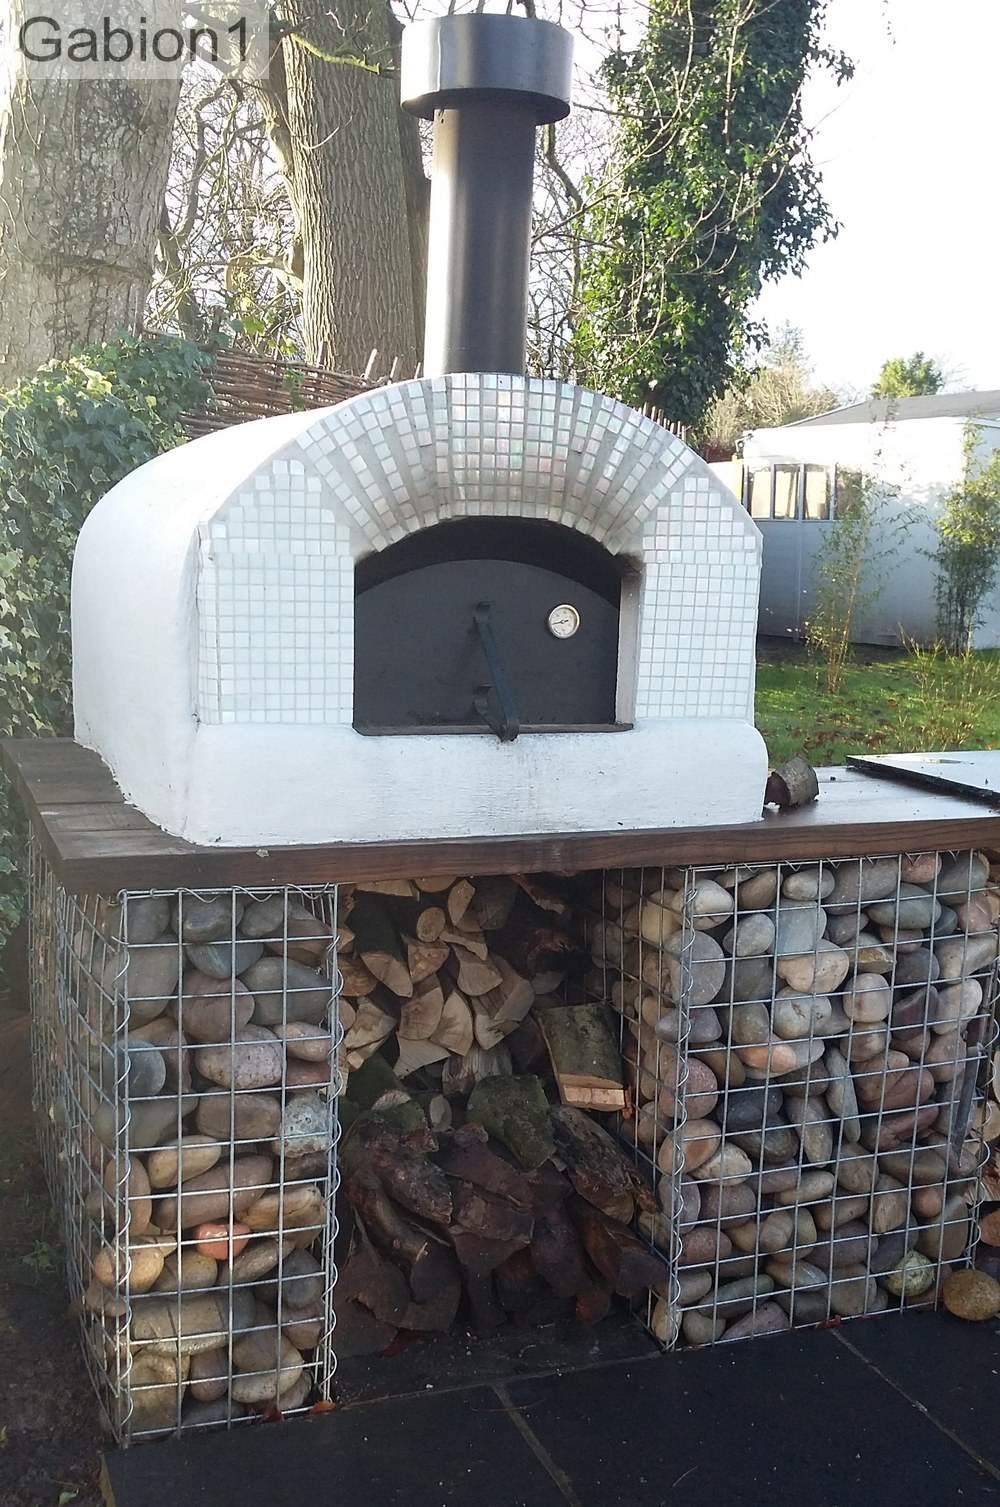 gabion base under pizza oven